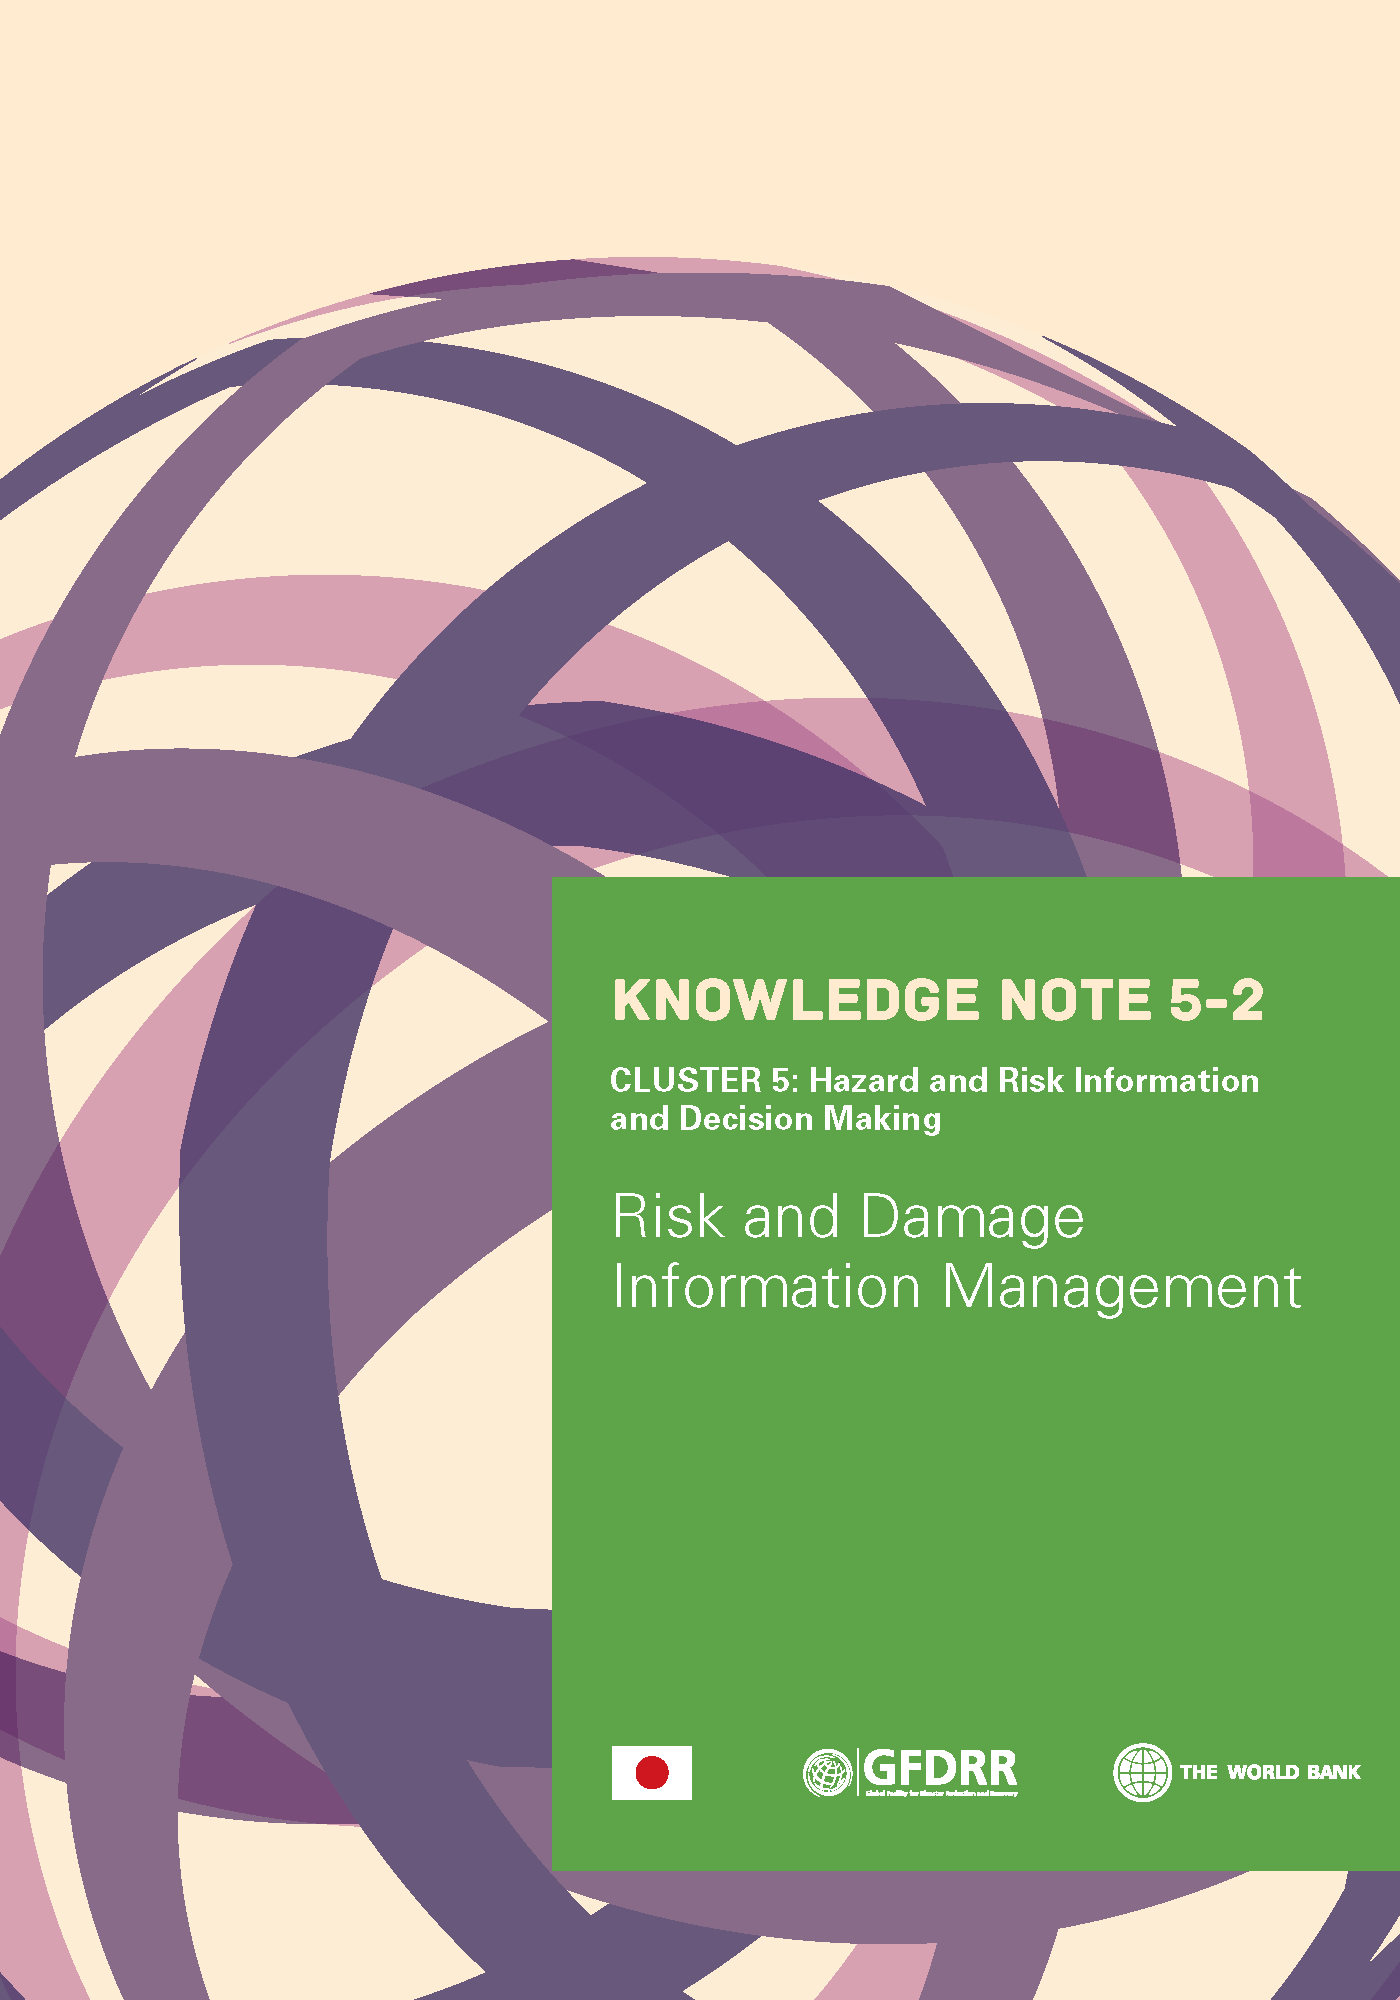 Learning from Megadisasters Knowledge Note 5-2